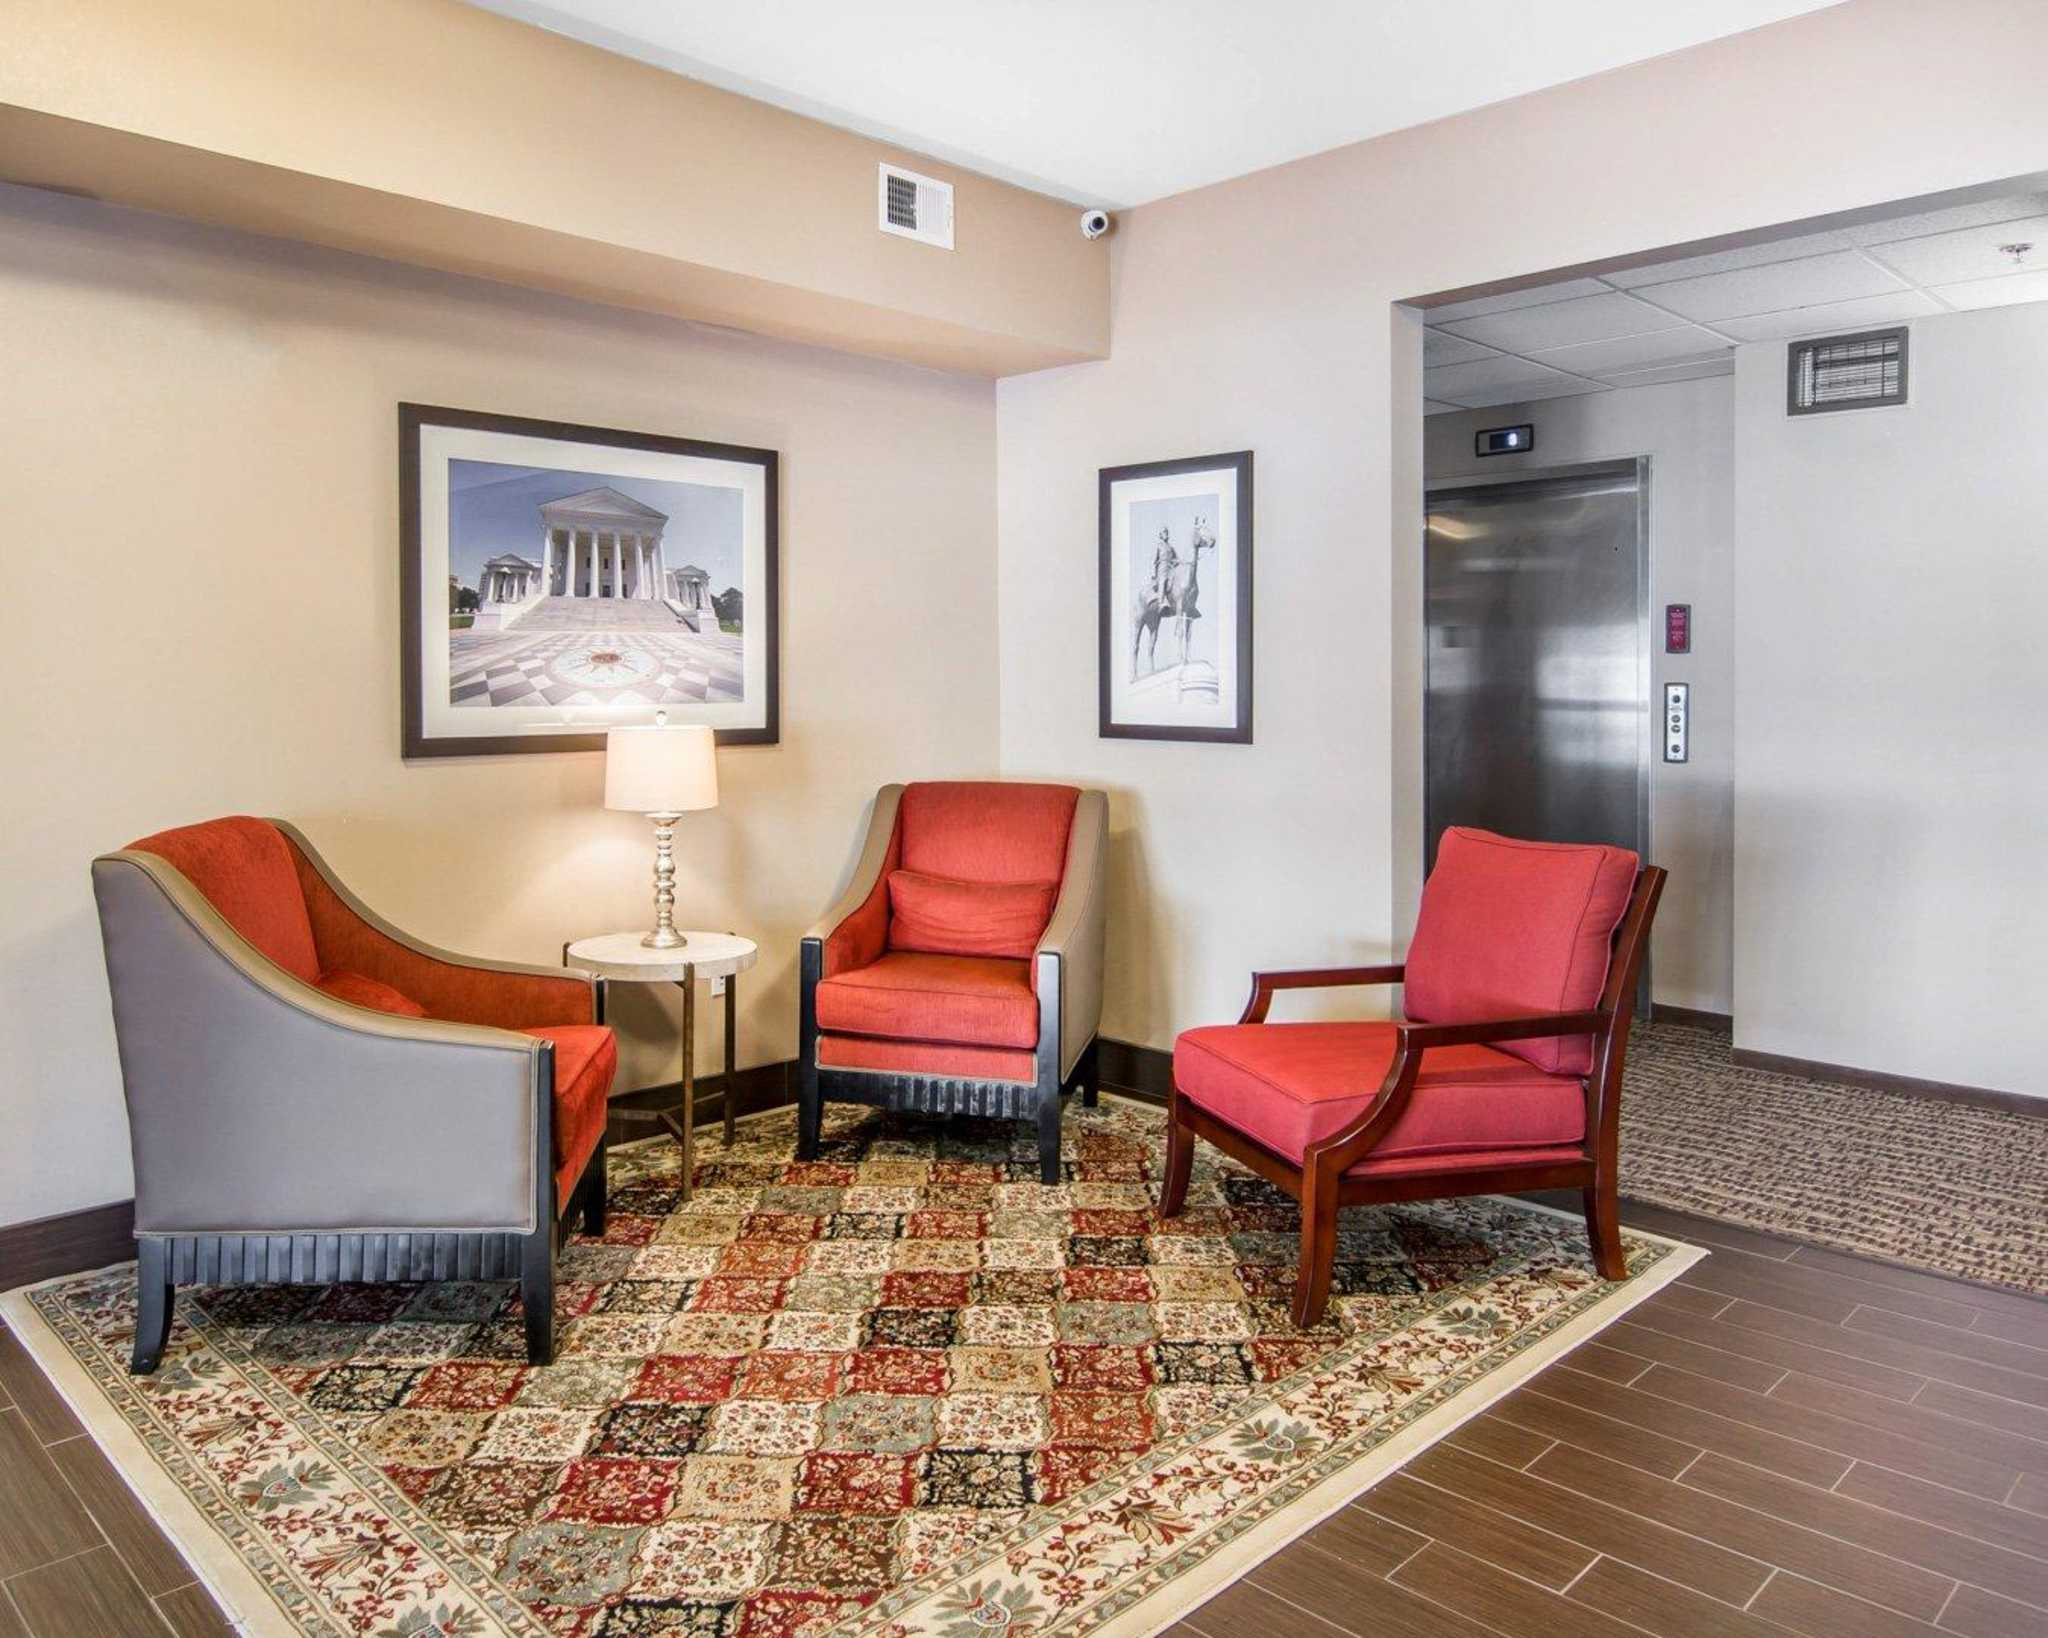 Comfort Inn South Chesterfield - Colonial Heights image 15